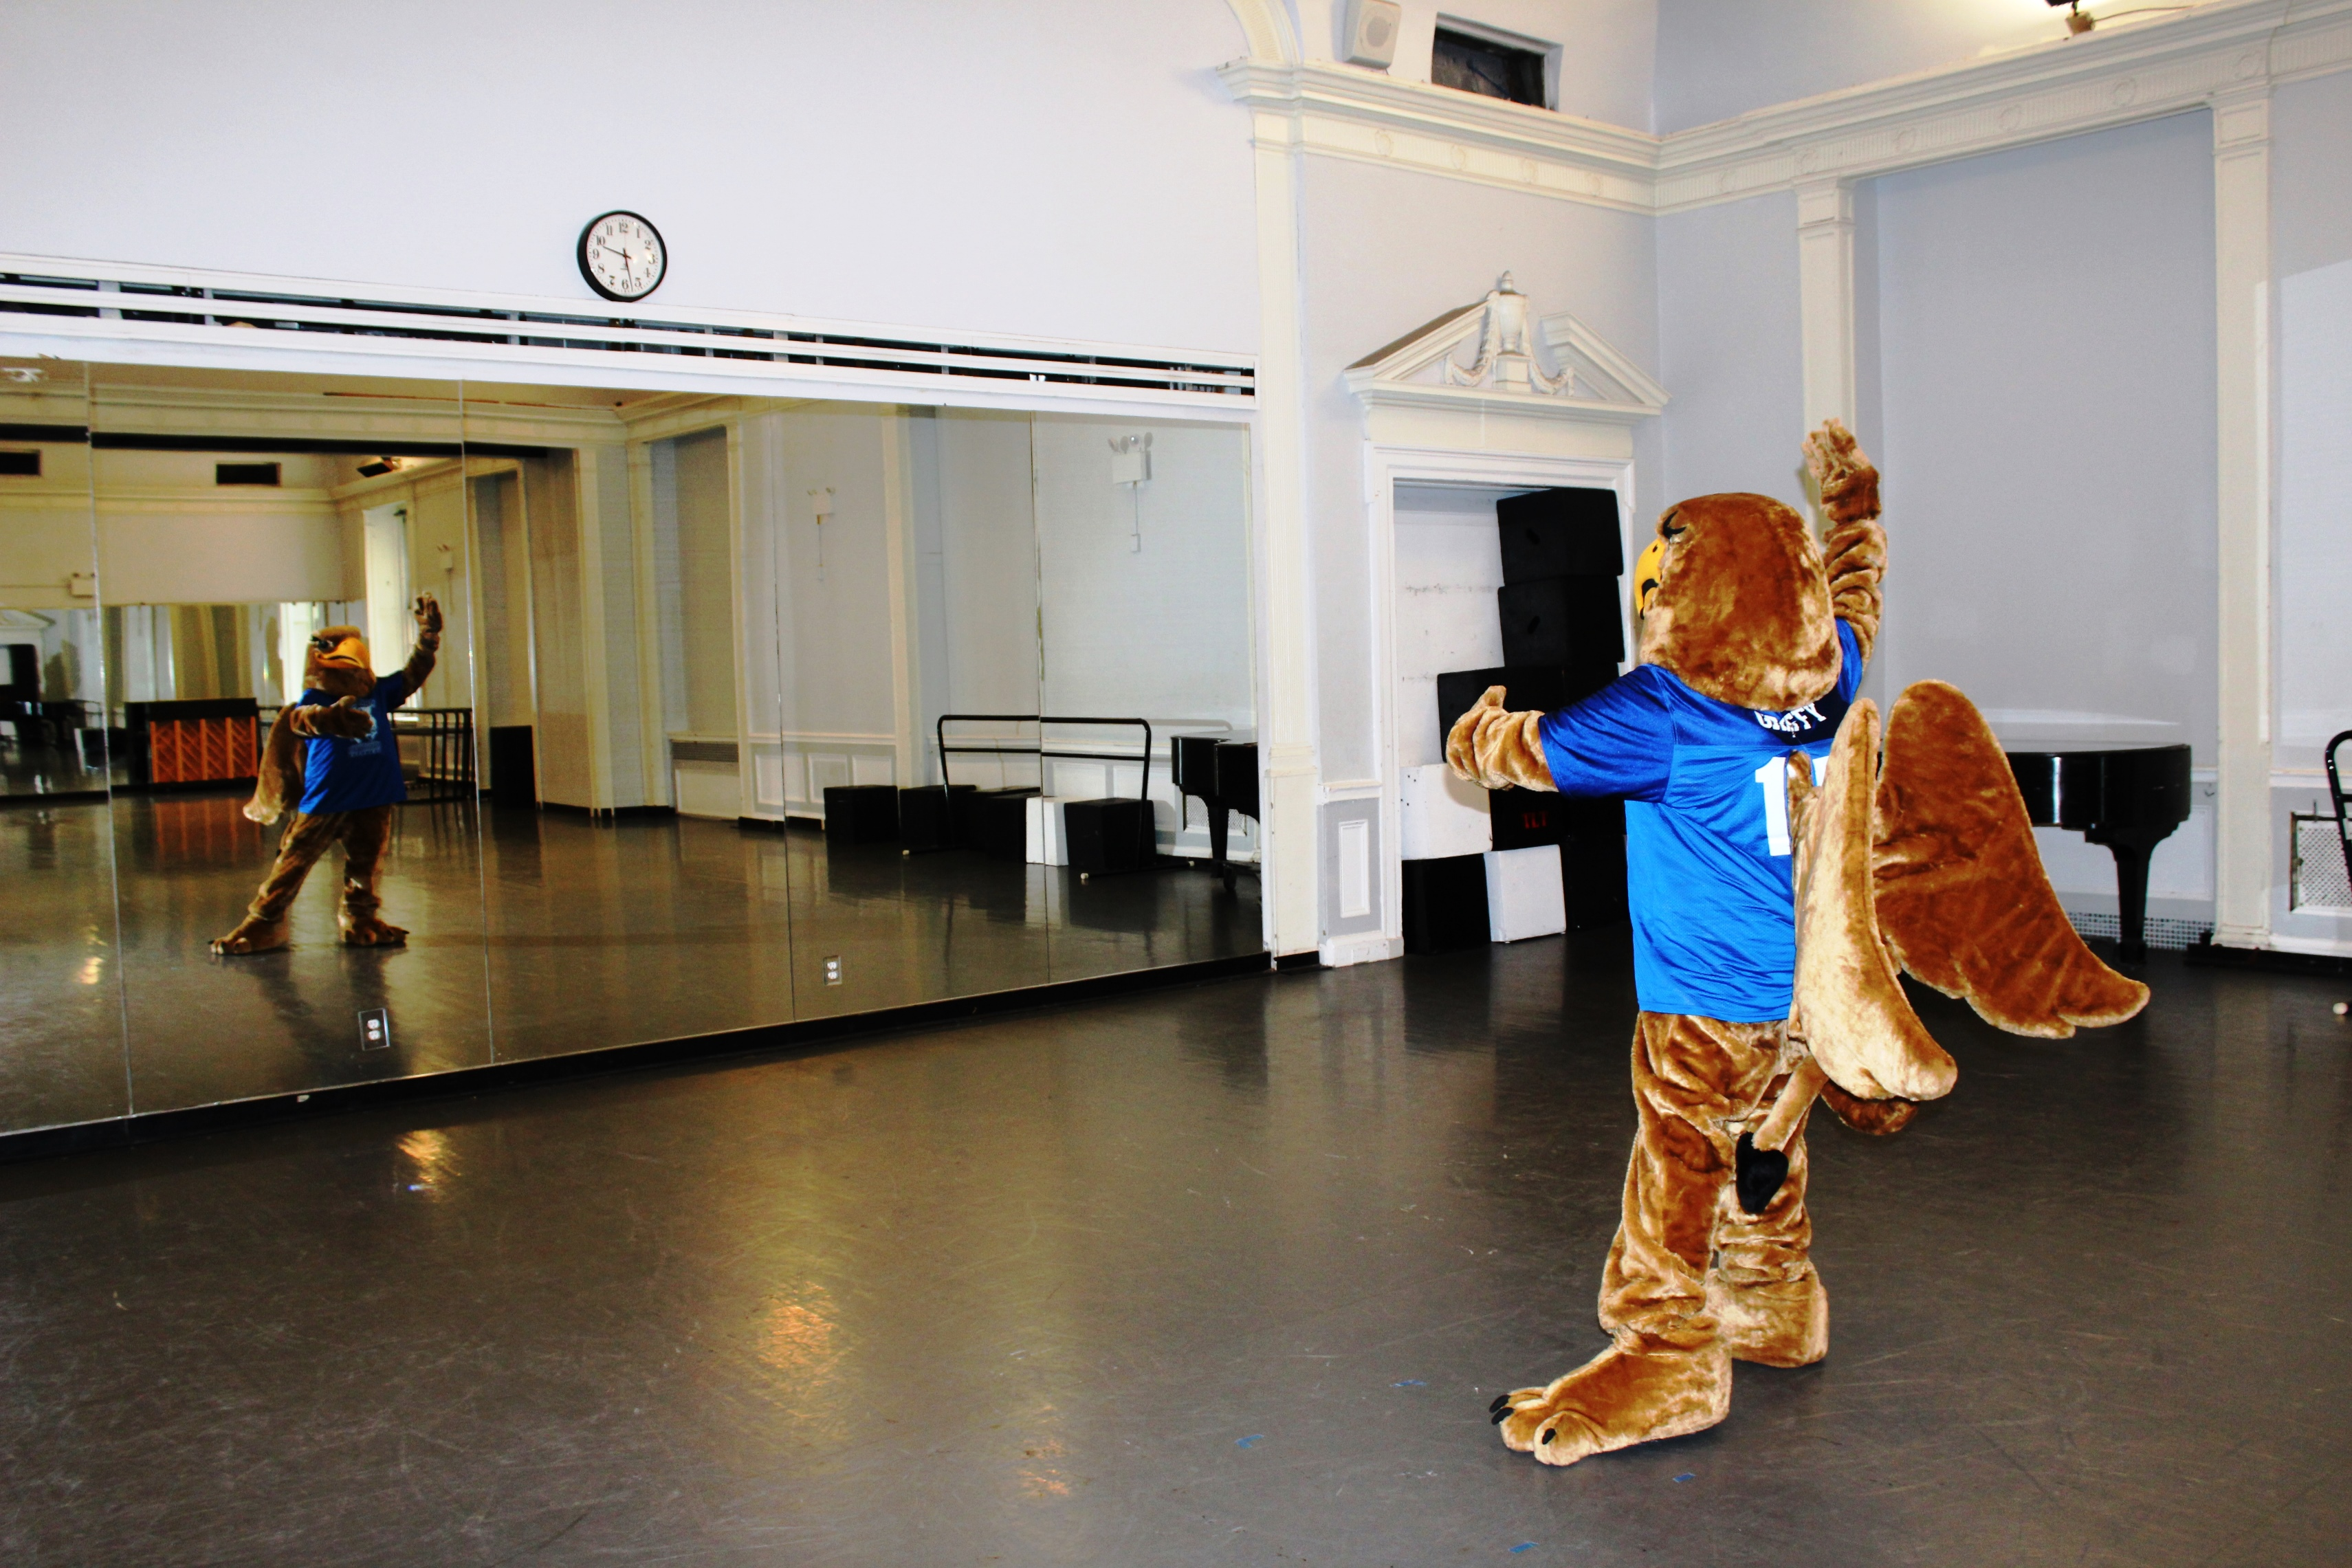 Griffy checking ballet position before mirror in Great Hall